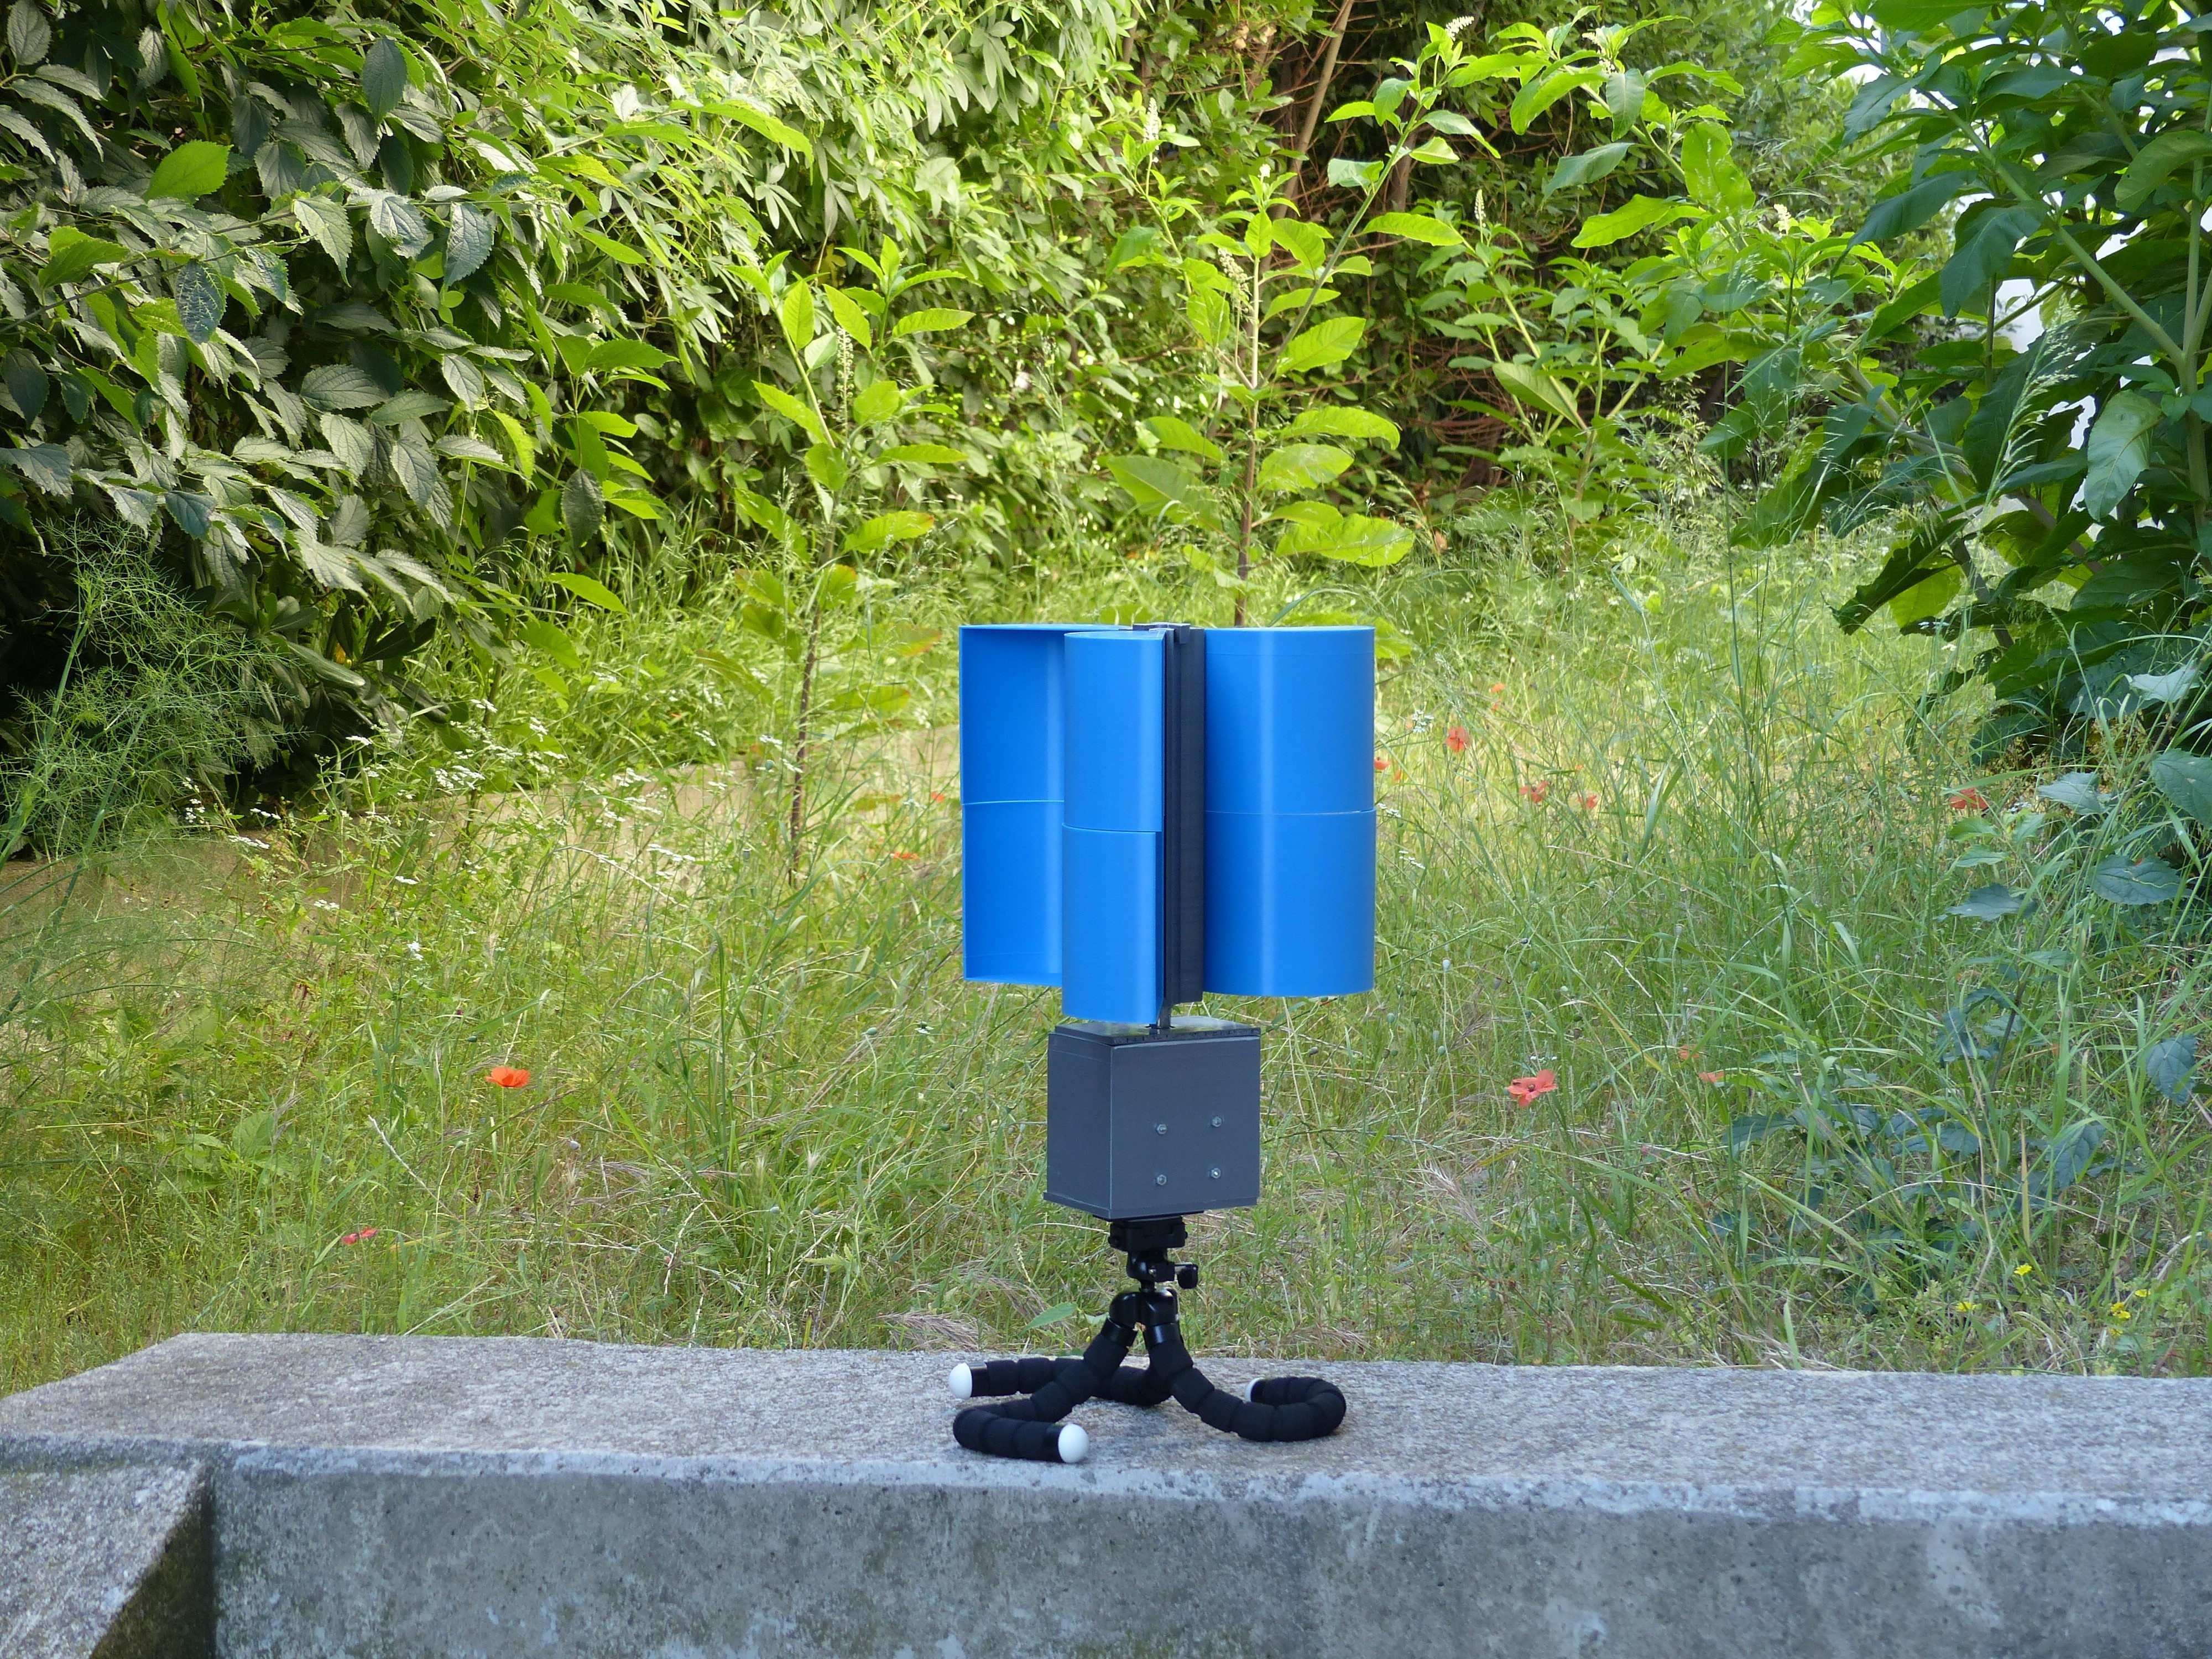 P1120460.JPG Download STL file Removable portable wind turbine • 3D printable template, younessanga